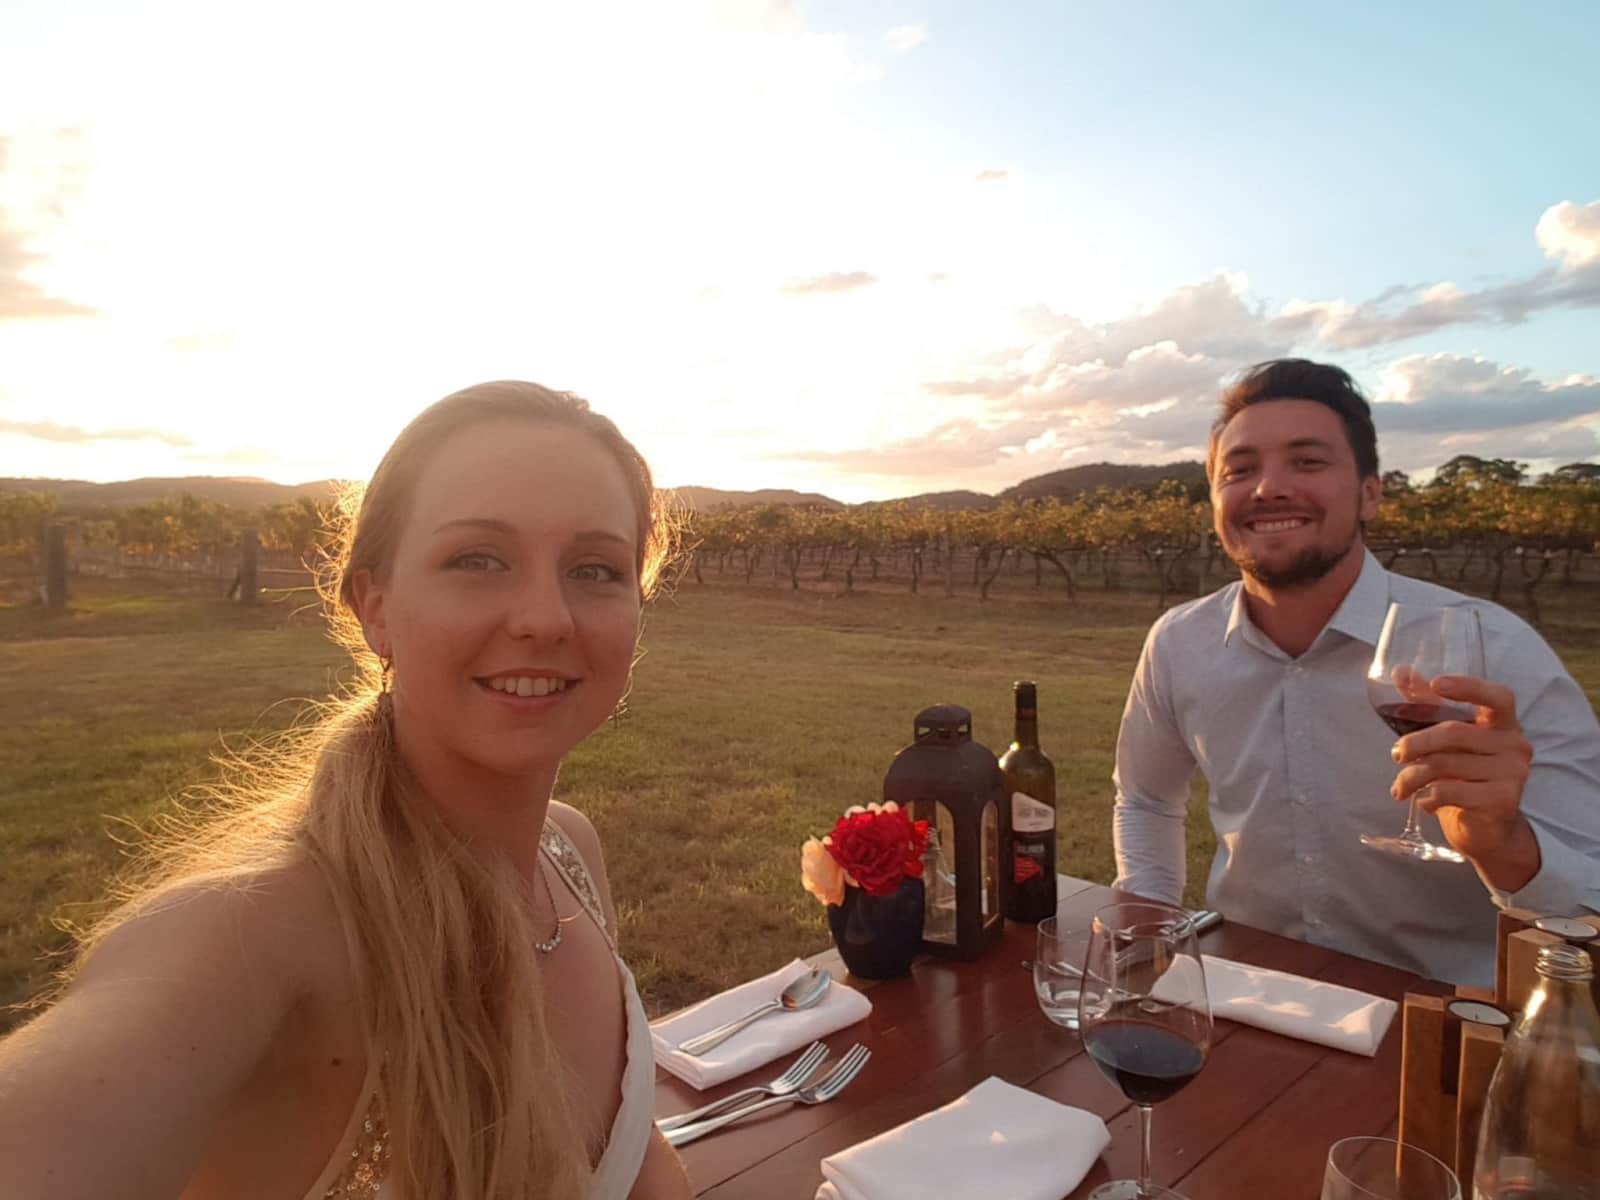 Jacquelyn and cory & Cory from Stanthorpe, Queensland, Australia